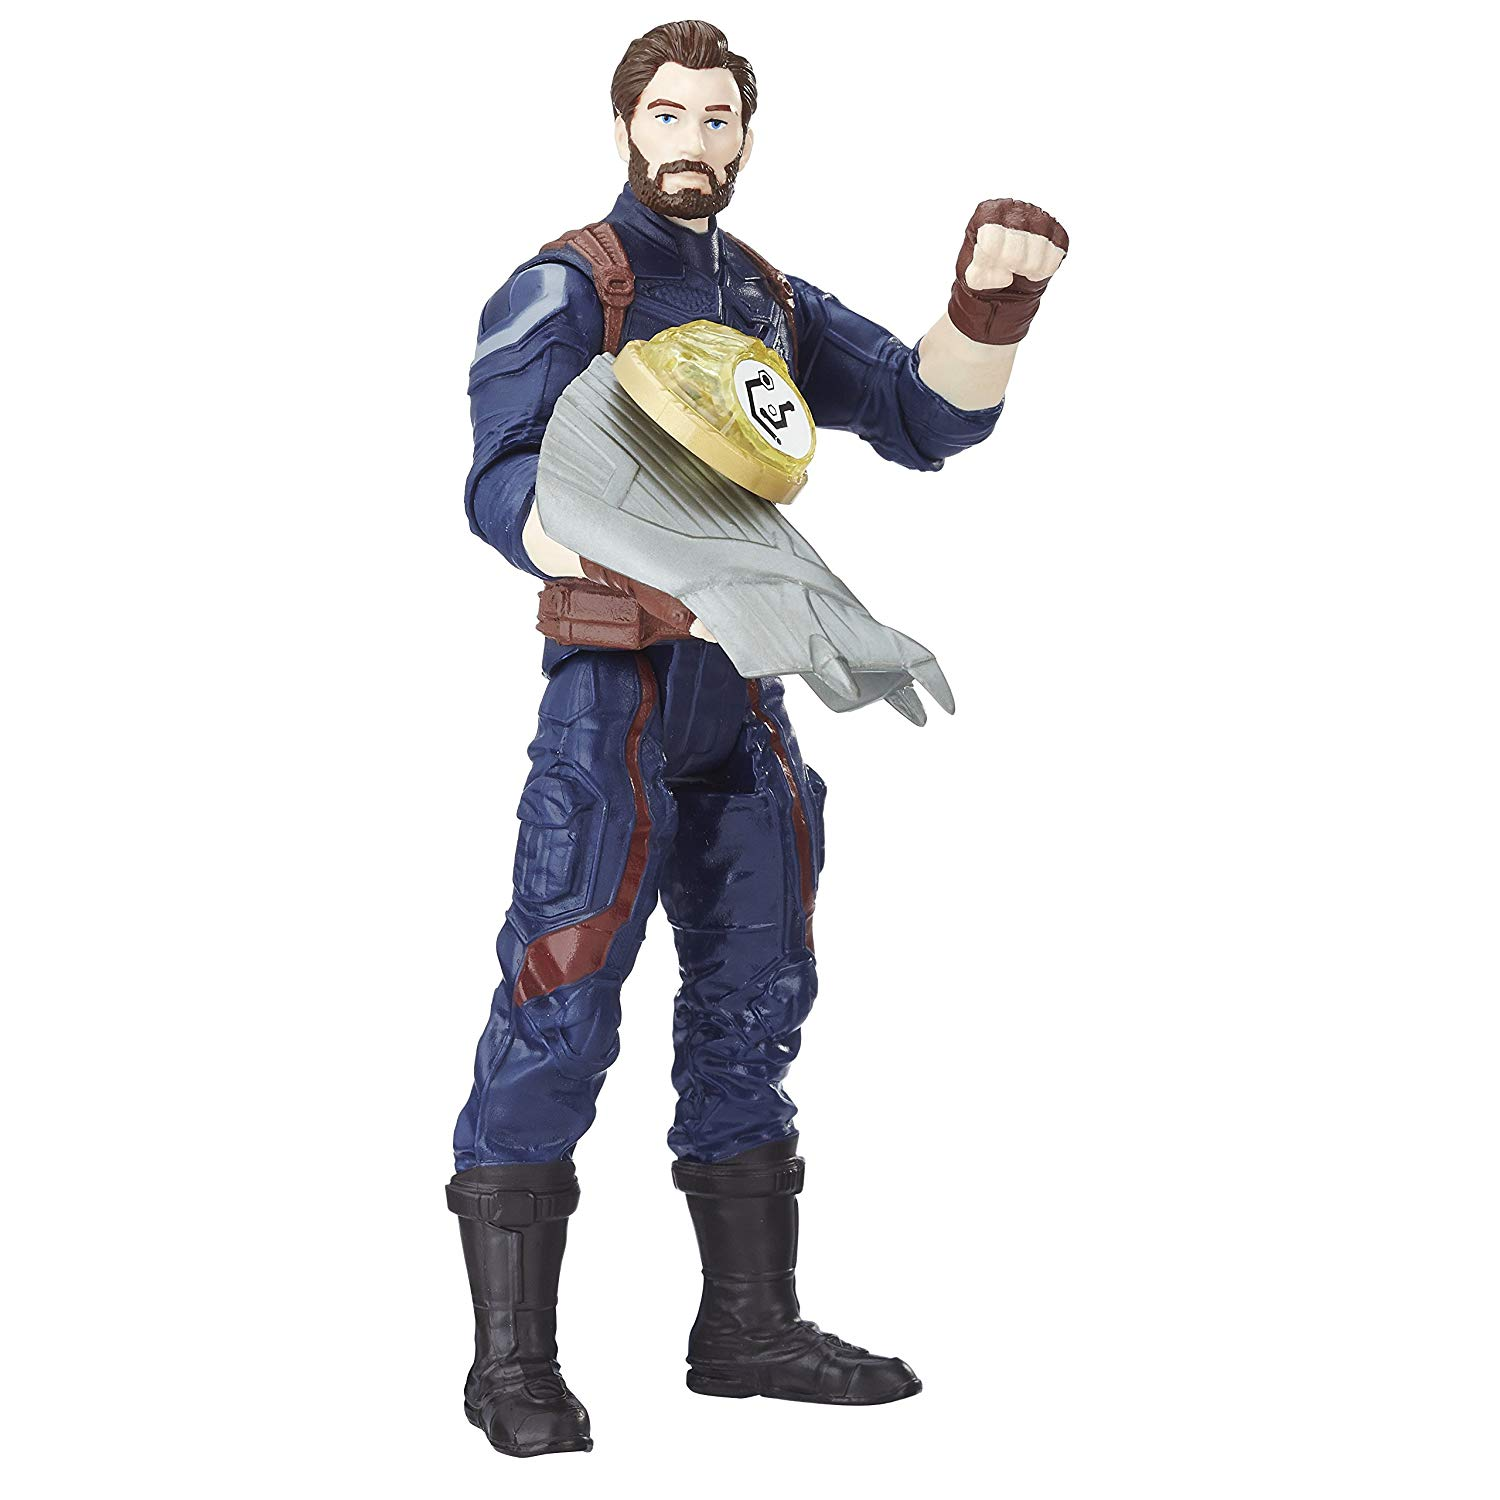 AVENGERS E1407EL2 War Captain America Figure with Infinity Stone